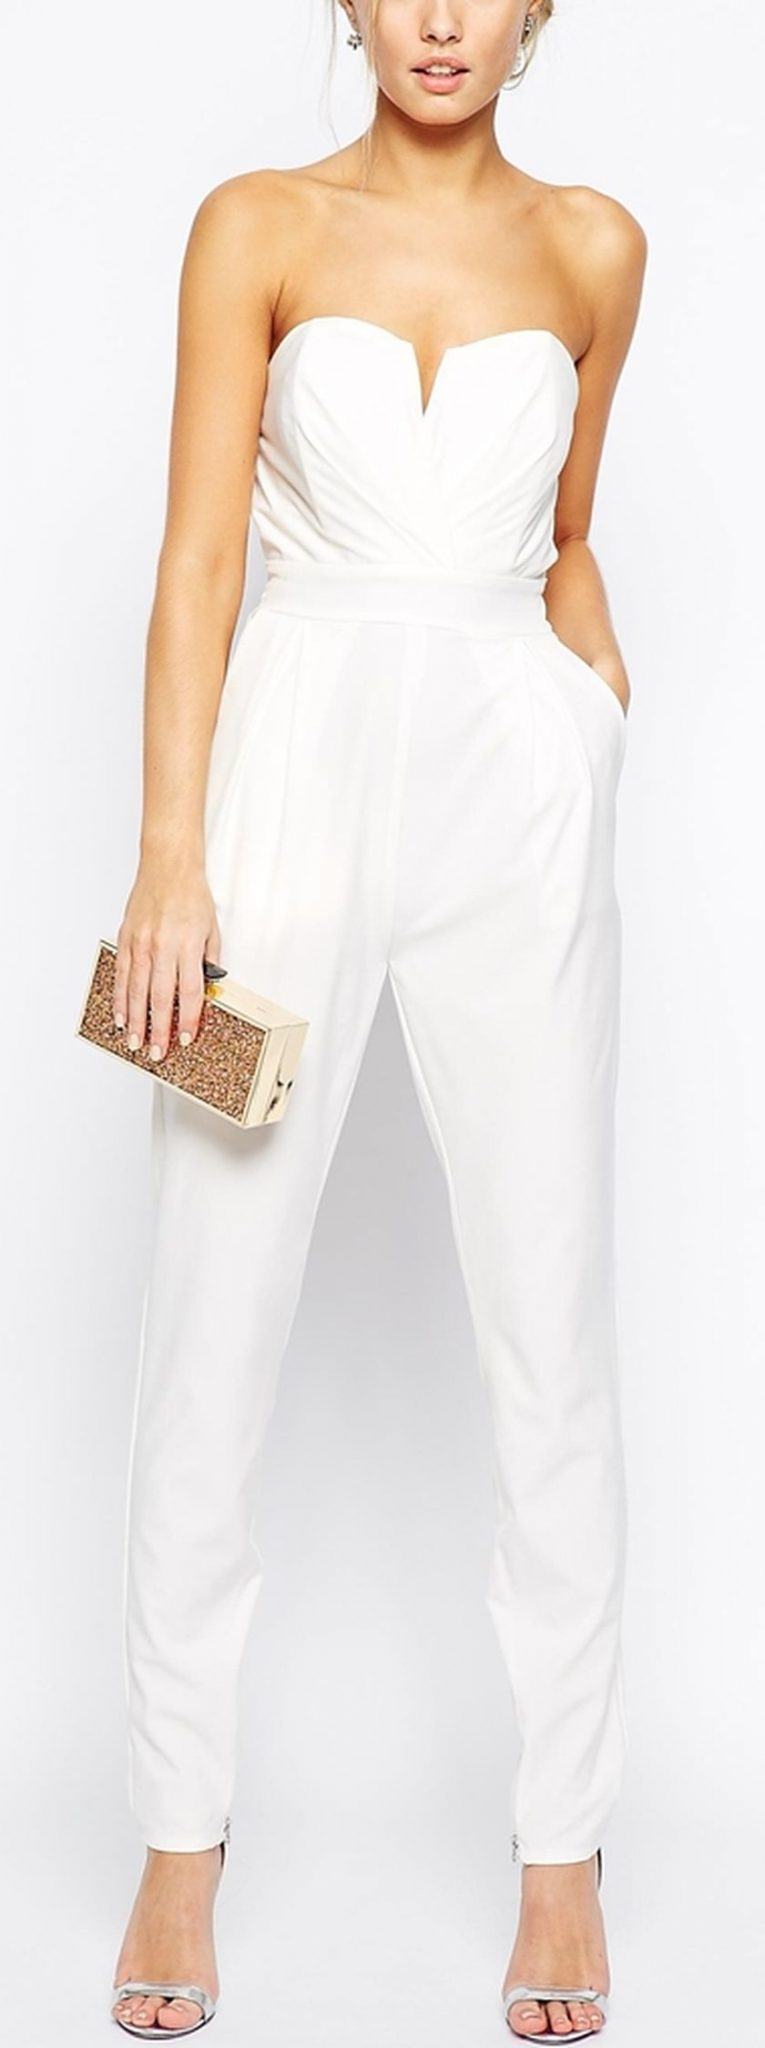 Jumpsuits strapless outfit 85